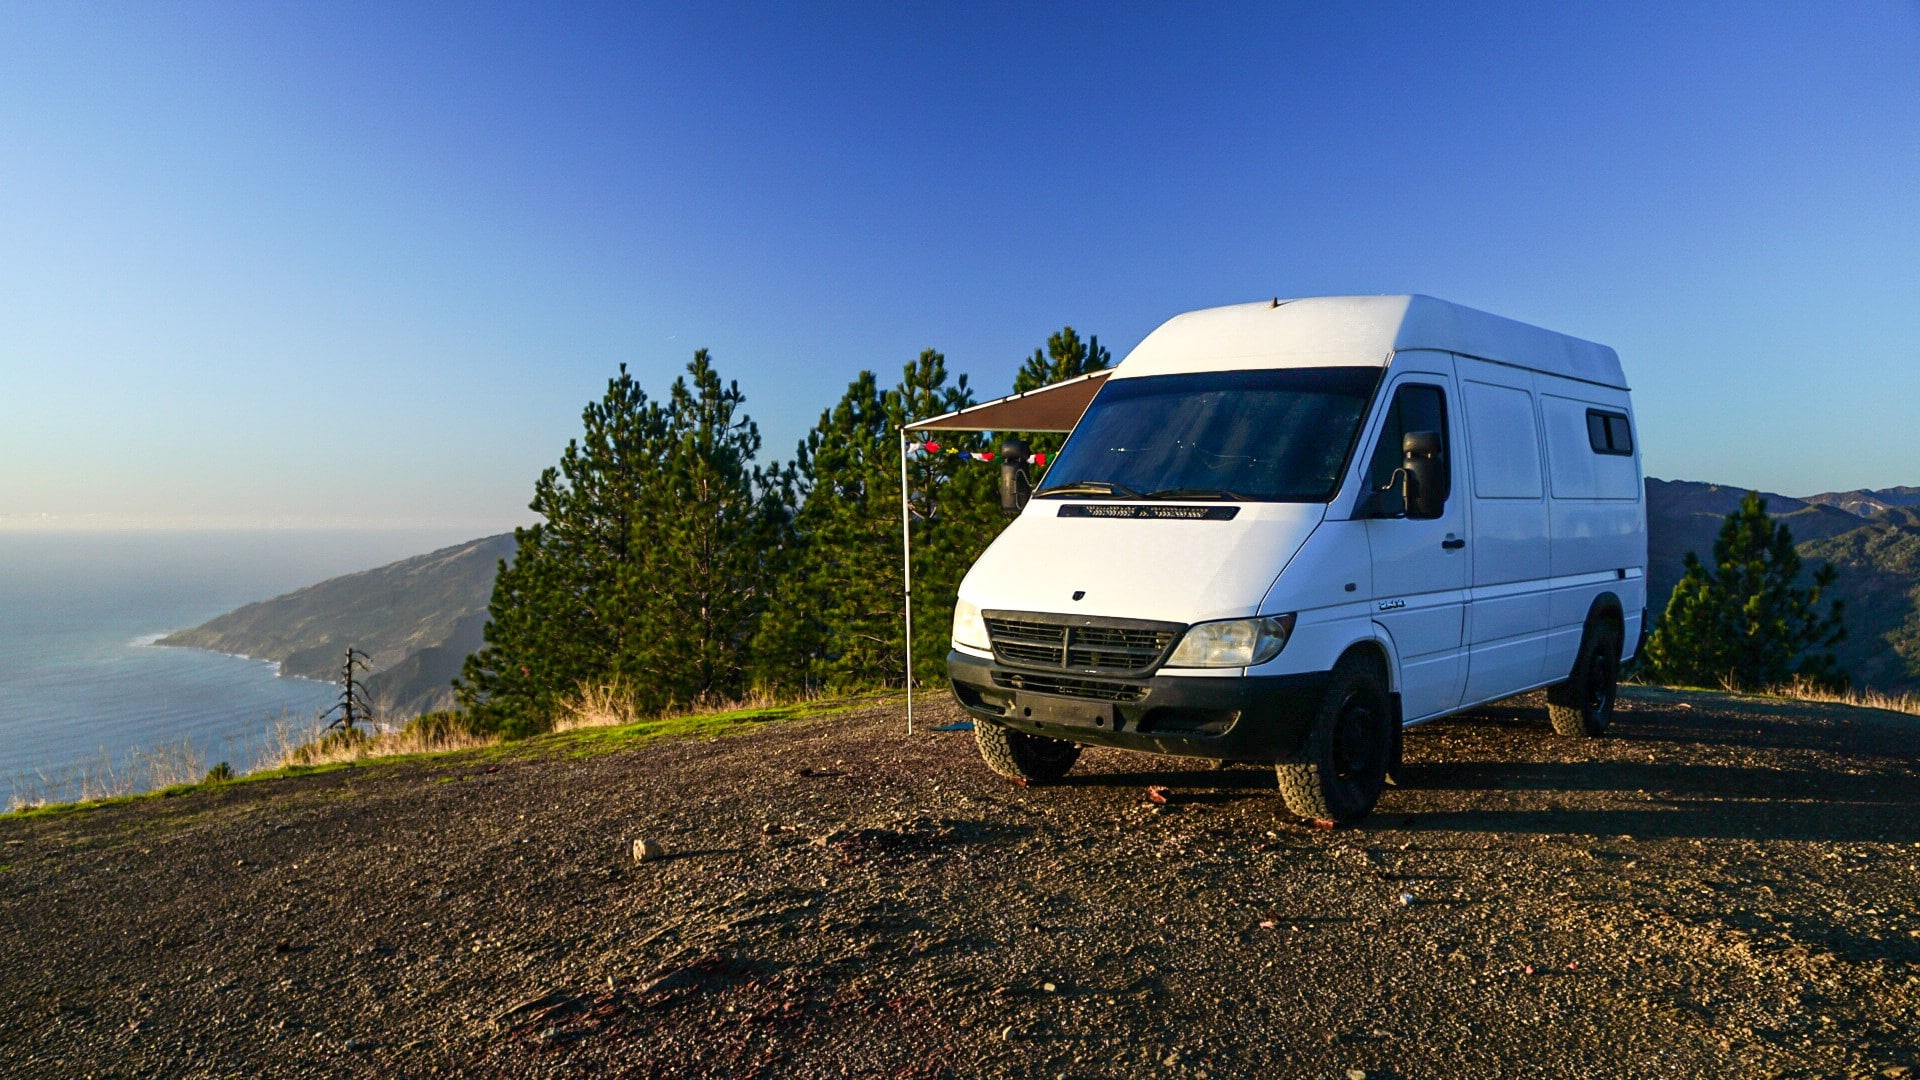 Camper Van Parked on Durable Surface // Is van life sustainable? Check out this blog post for environmentally-friendly tips on how to reduce your impact as an eco-friendly van lifer!